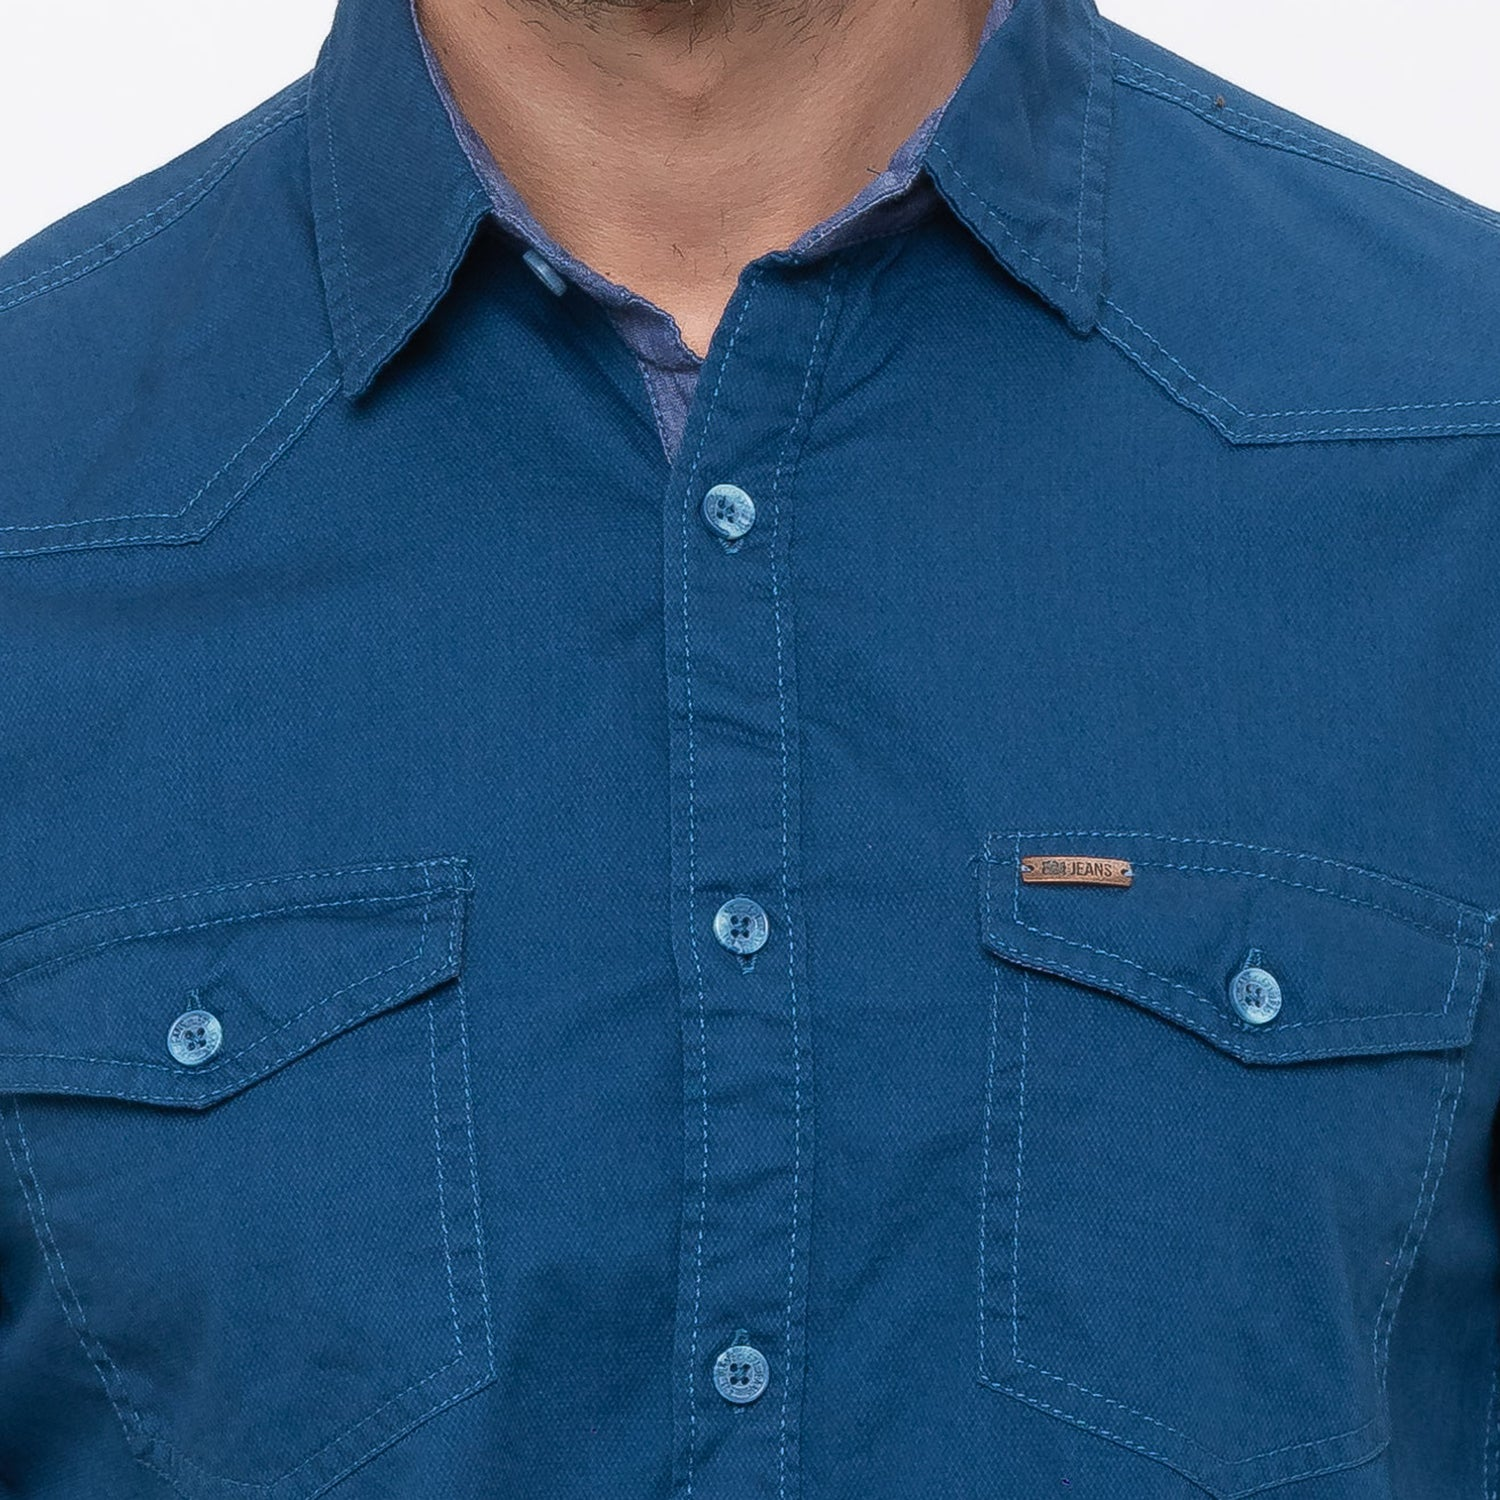 Globus Blue Solid Shirt-5